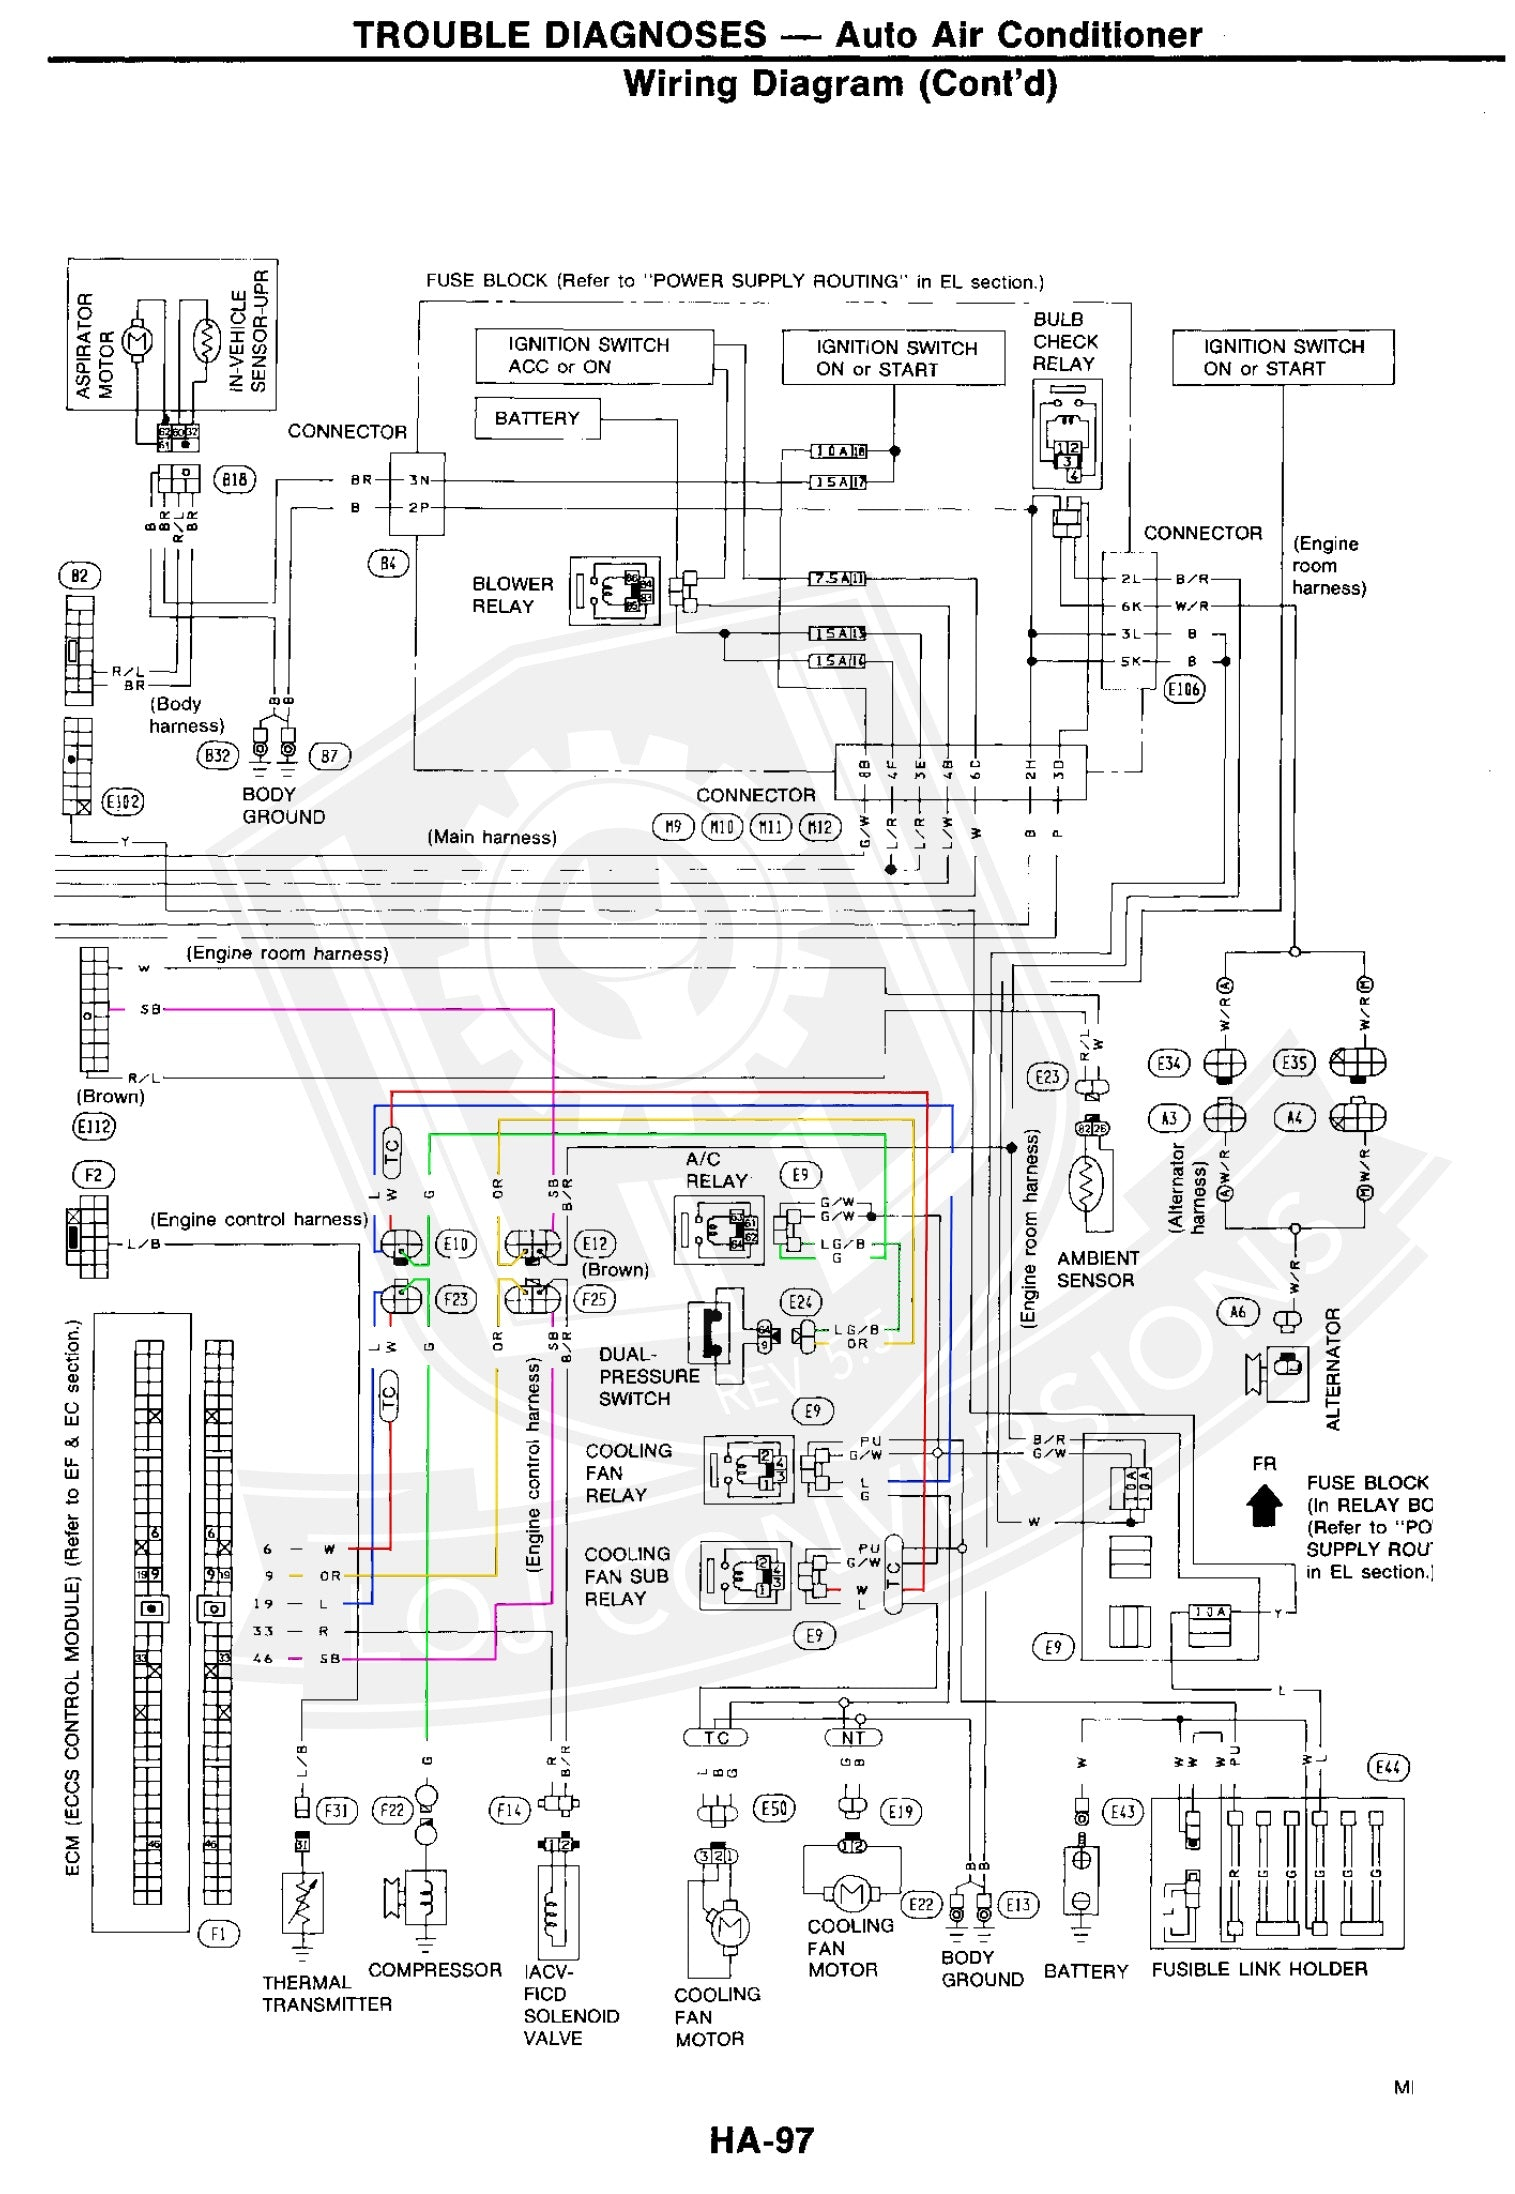 Wiring Diagram Z31 300zx Na | Wiring Diagram on nissan oil filter, nissan lights, nissan fuel pump, nissan fuse, nissan body harness, nissan radio harness, nissan starter, nissan engine, nissan water pump, nissan speedometer, nissan exhaust, nissan throttle body, nissan ecu, nissan brakes, nissan headlights, nissan timing belt, nissan timing chain, nissan alternator, nissan radiator, nissan transformer,